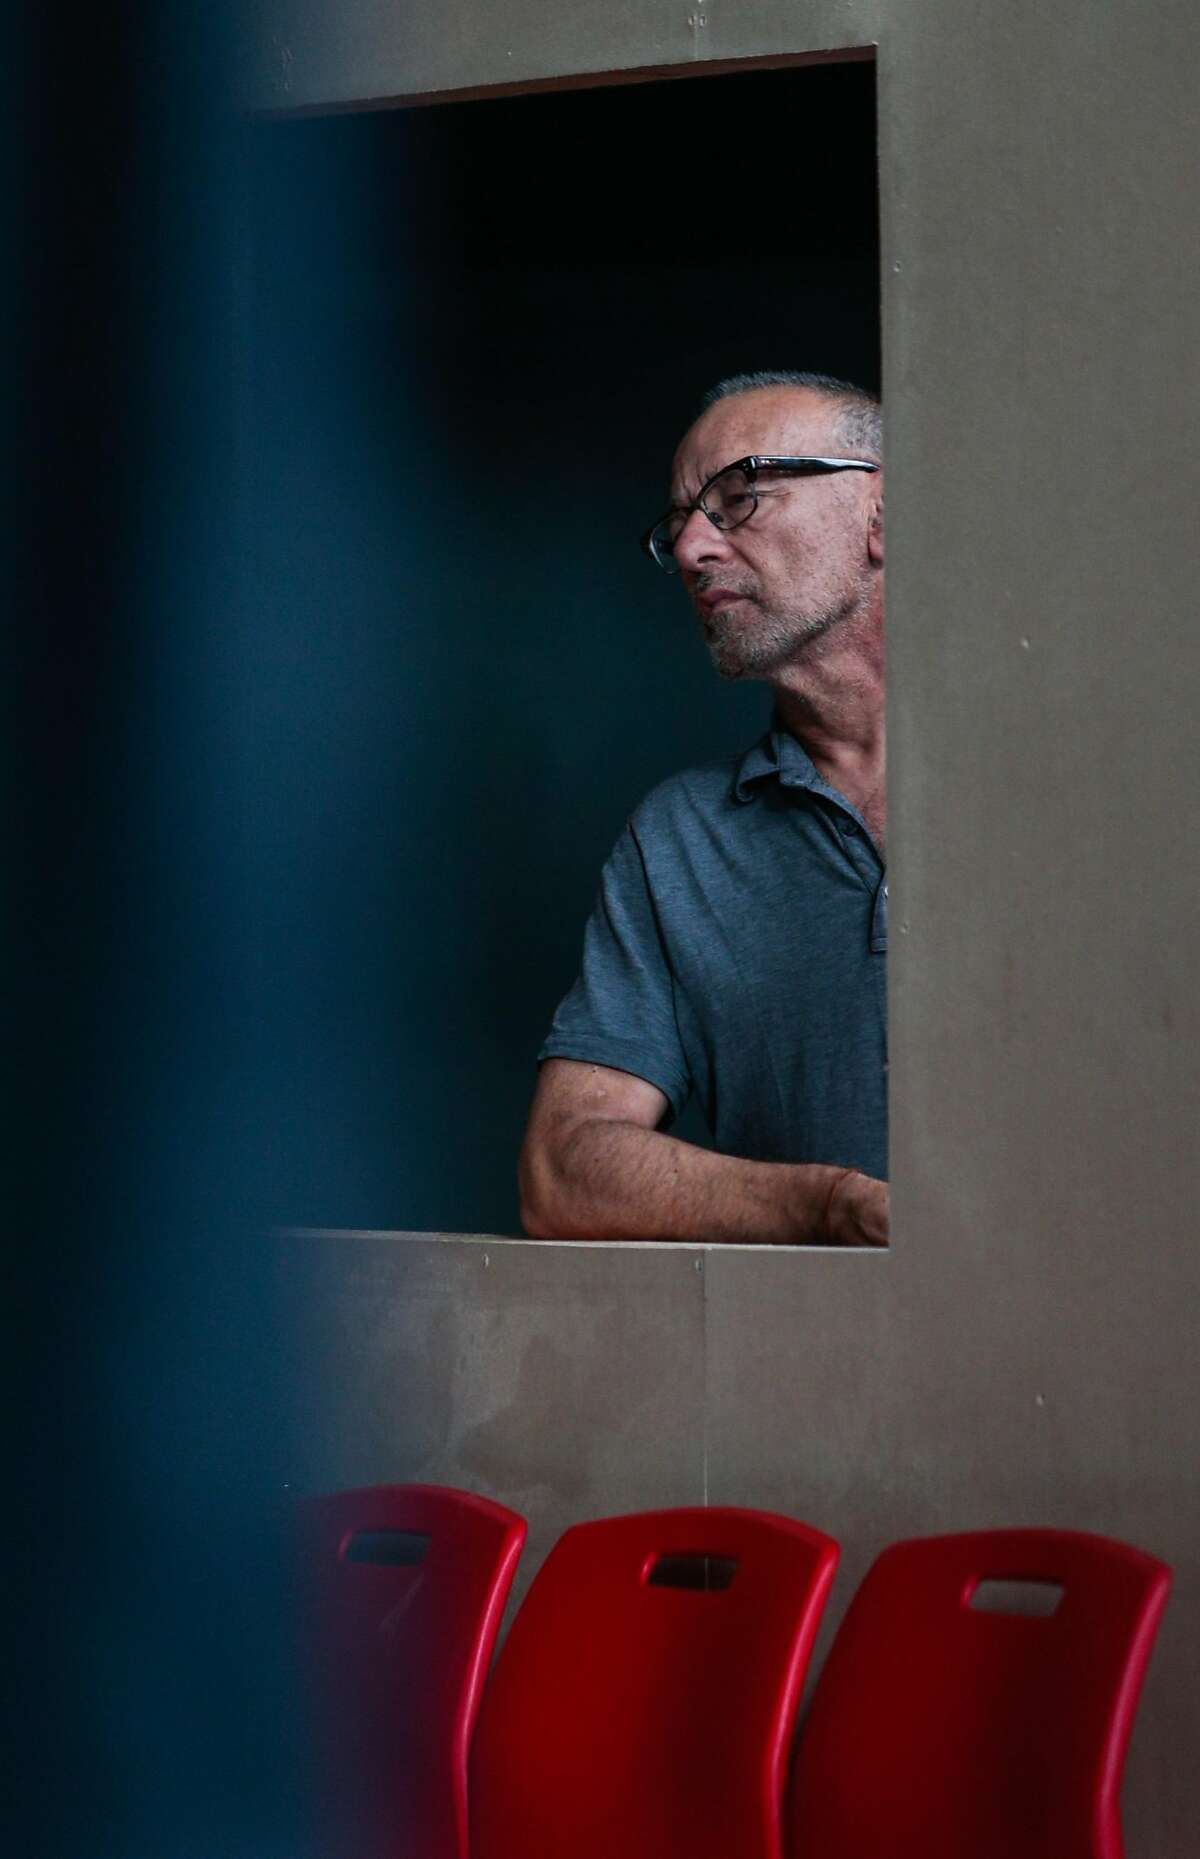 """Joe Goode rehearses for his latest work, """"Poetics of Space"""", a blend of drama and choreography in installations which viewers walk through, on Wednesday, Sept. 2, 2015 in San Francisco, Calif. Goode celebrates 30 years working in dance theater this year."""